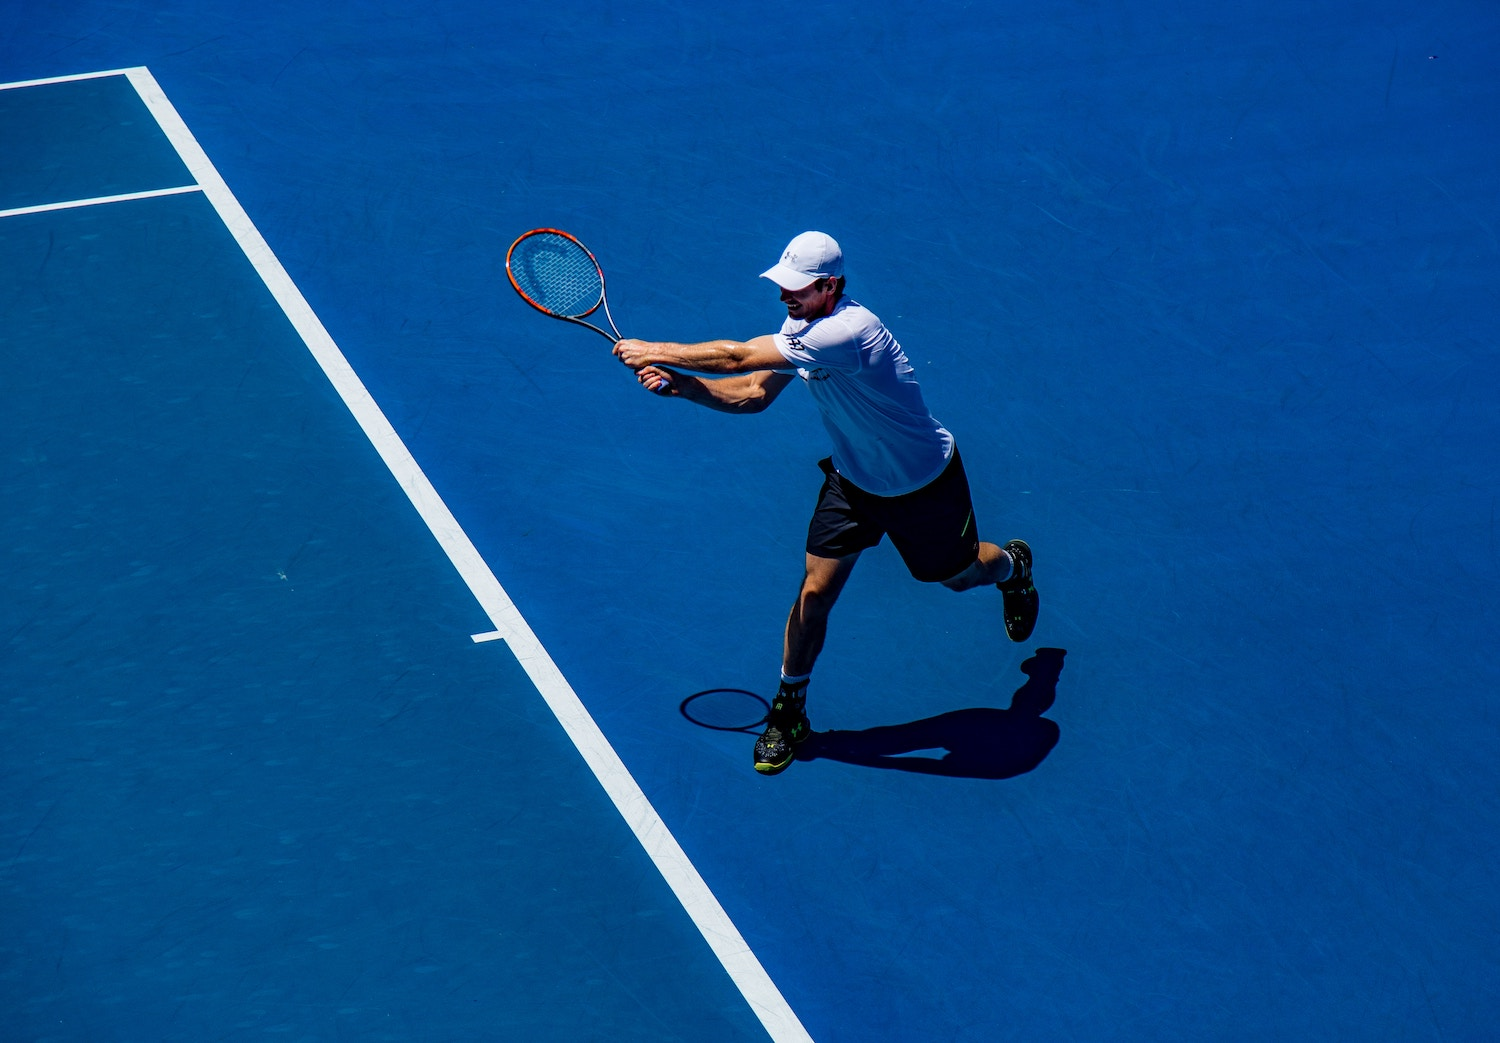 5 Things You Can Learn About Data from Watching the Aus Open